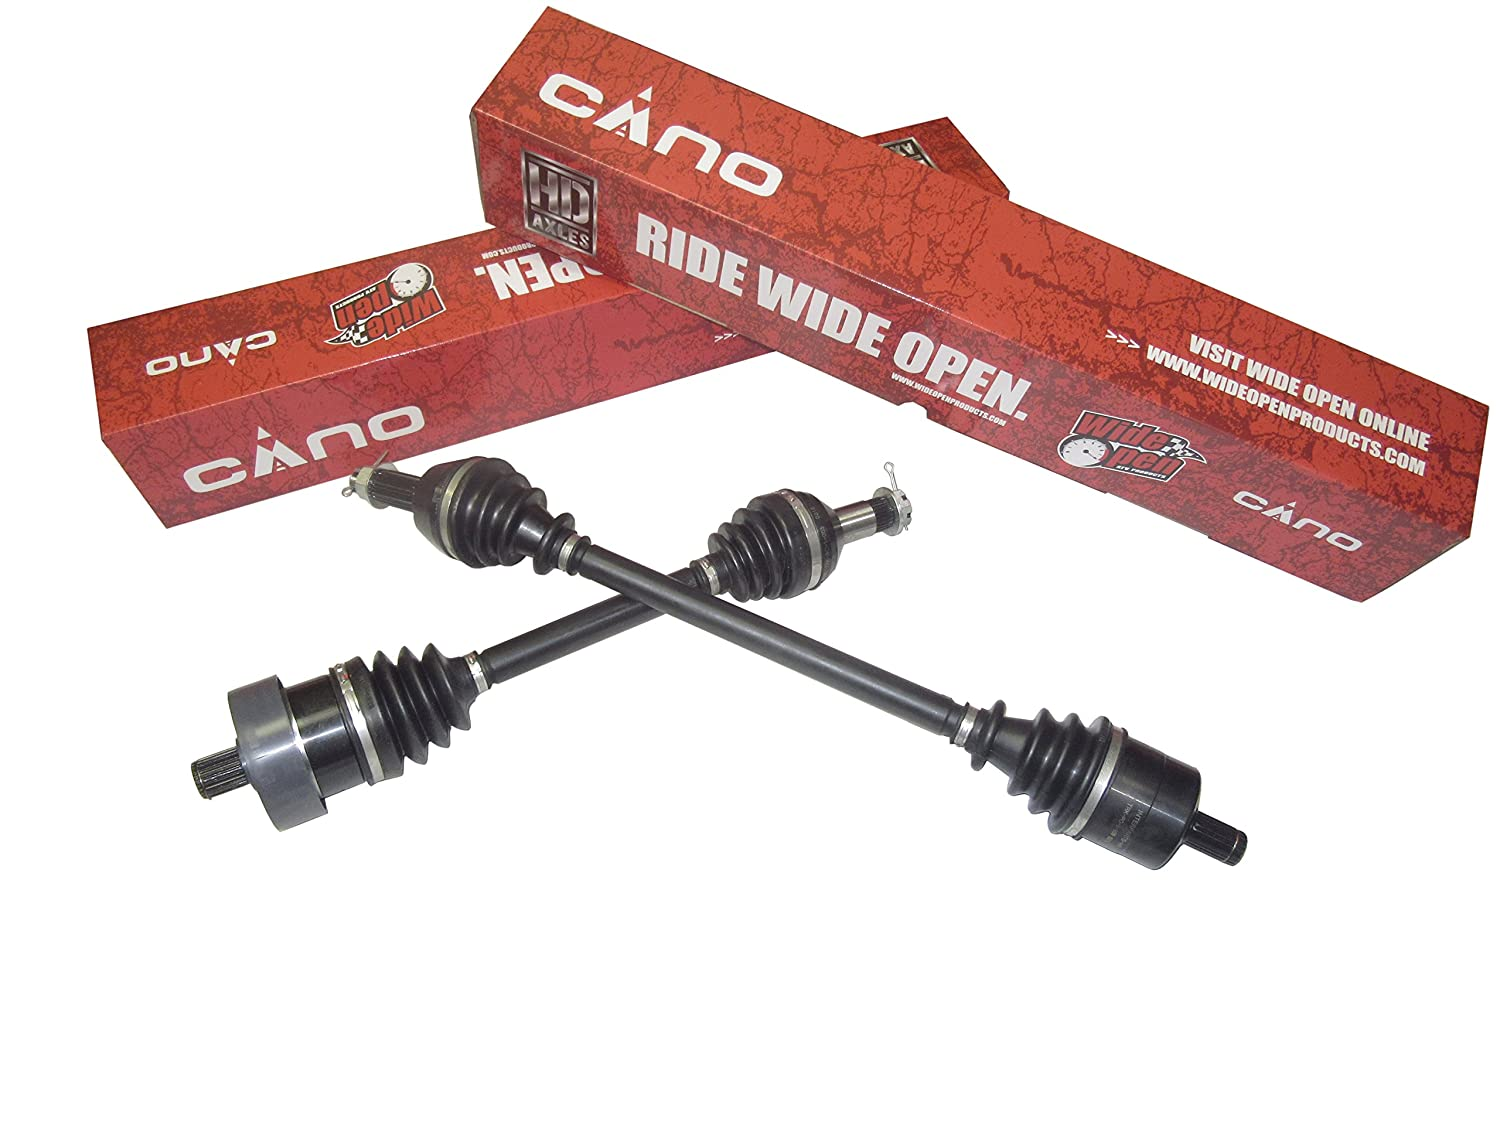 ECCPP CV Axle for 2000-2005 Honda TRX 350 Rancher Front Left//Right 1 PC Complete Shaft Assembly